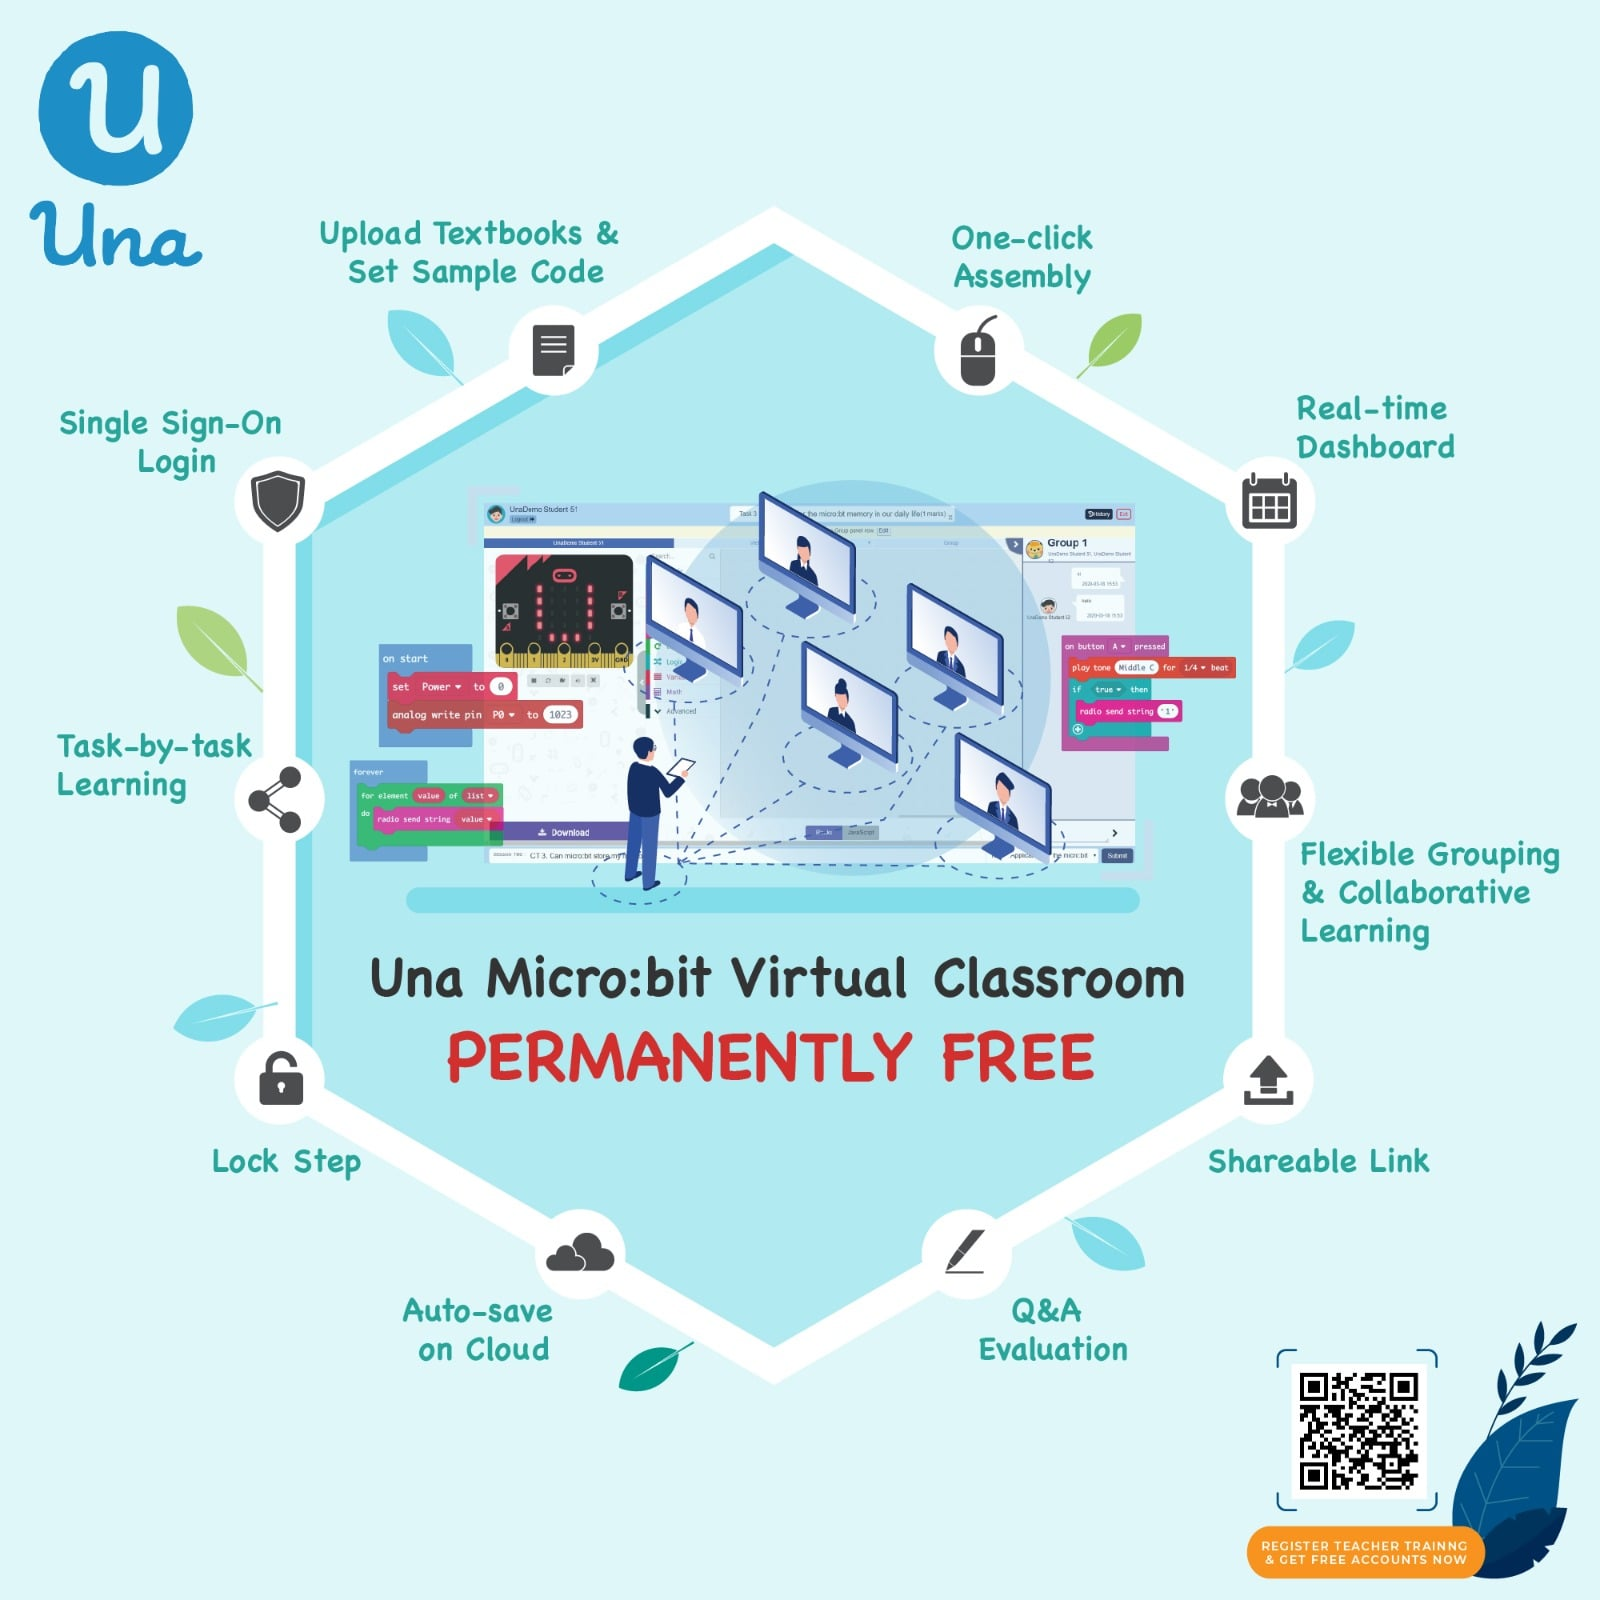 Una micro:bit virtual classroom is now permanently free for all schools | Provide free teacher training and limited time discount offer to new customers